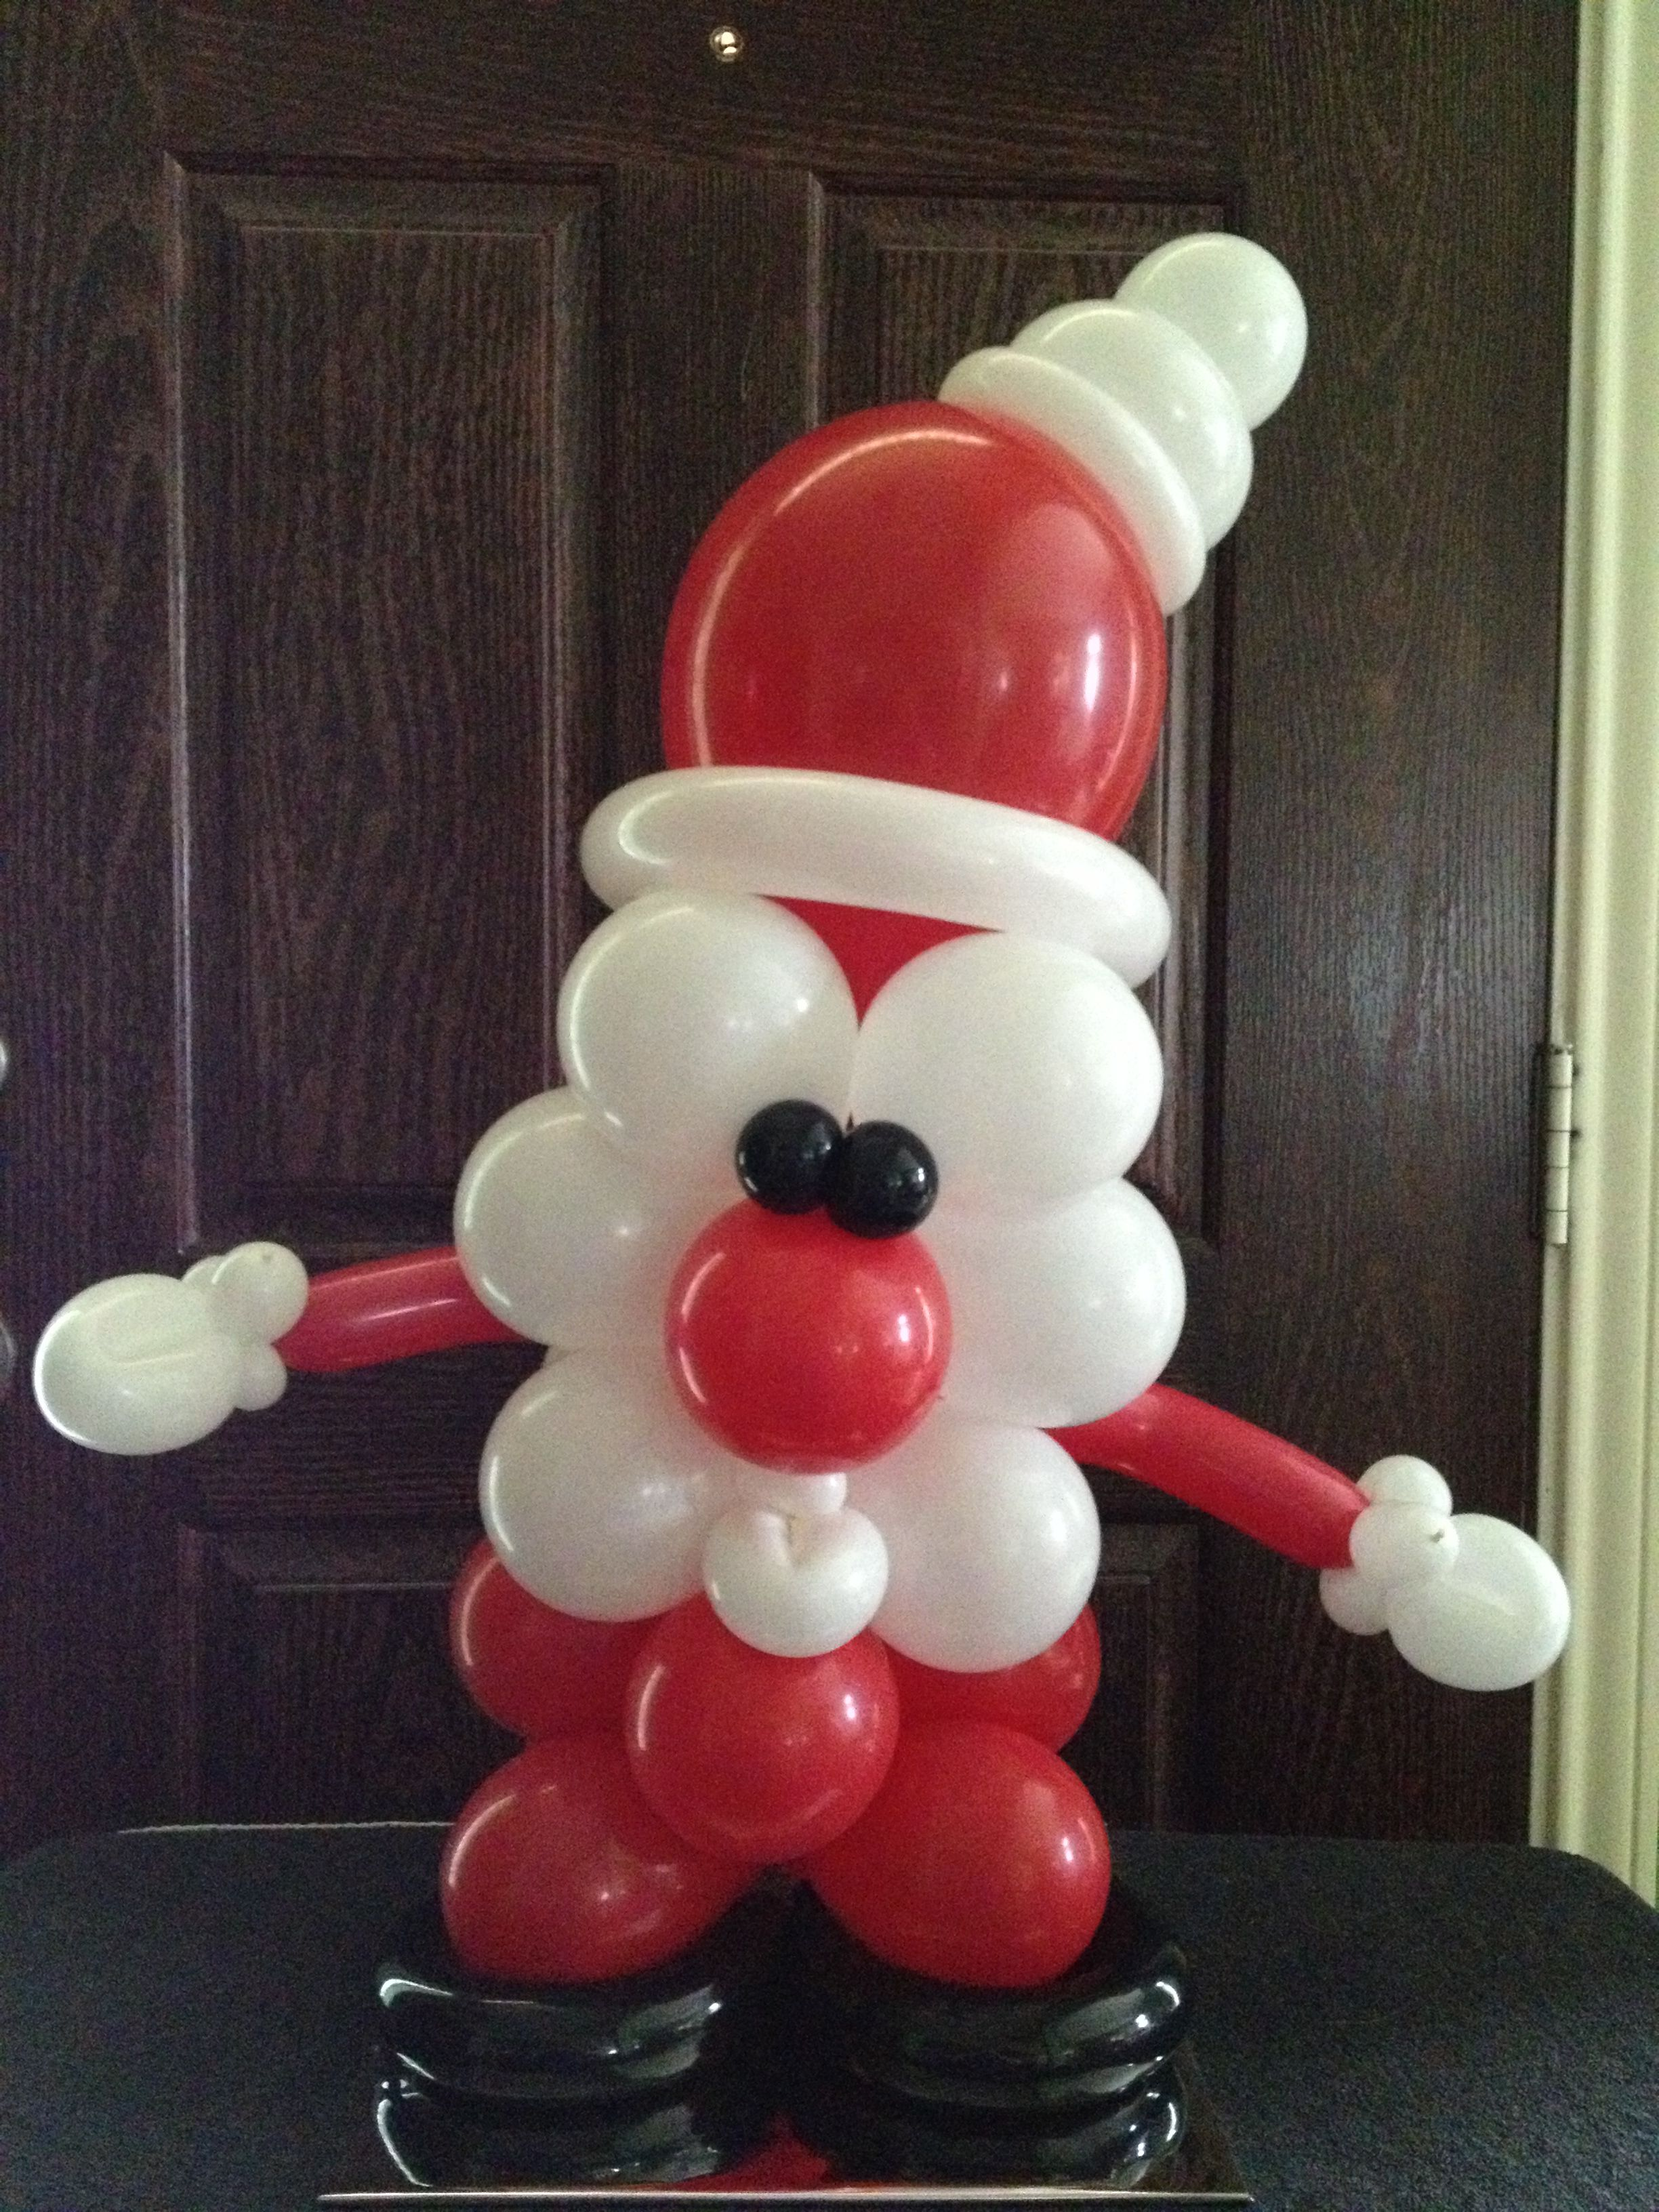 Here Is A Closer Look At Balloon Santa Hes Watching Christmas